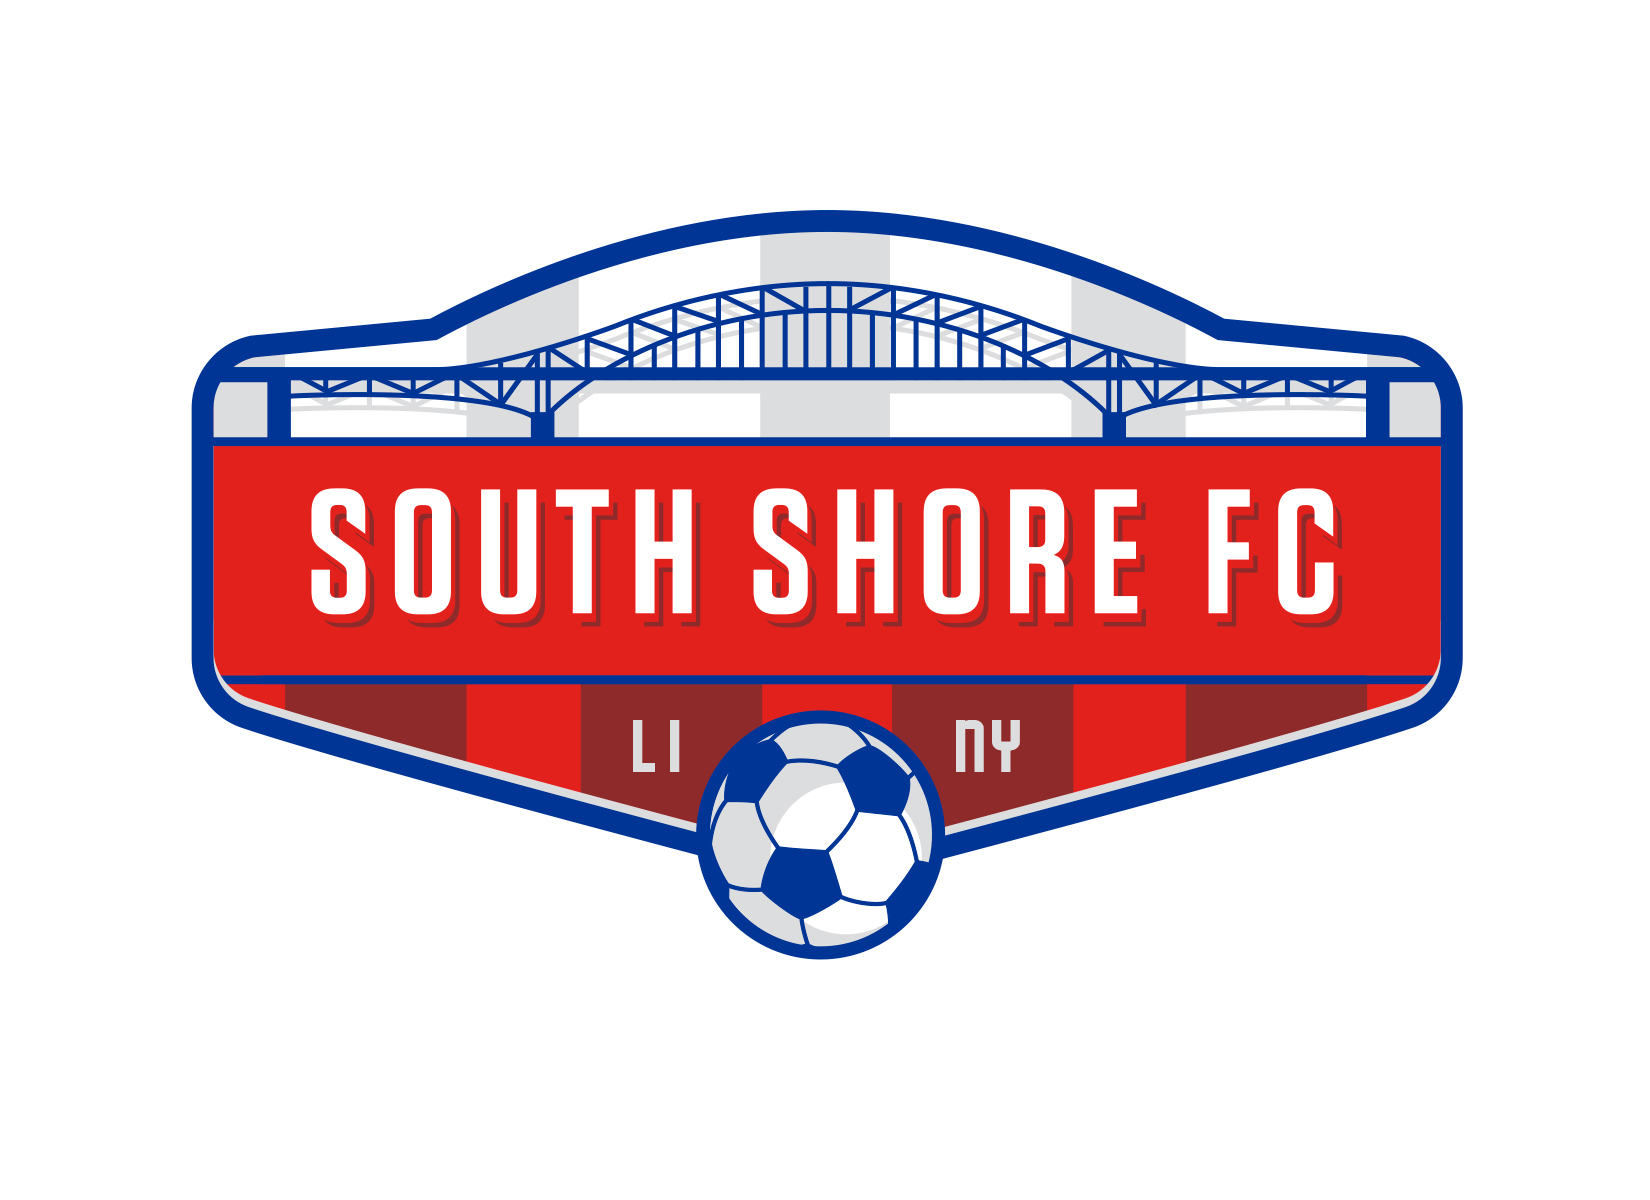 custom-soccer-logo-design-for-south-shore-fc-jordan-fretz-2.jpg